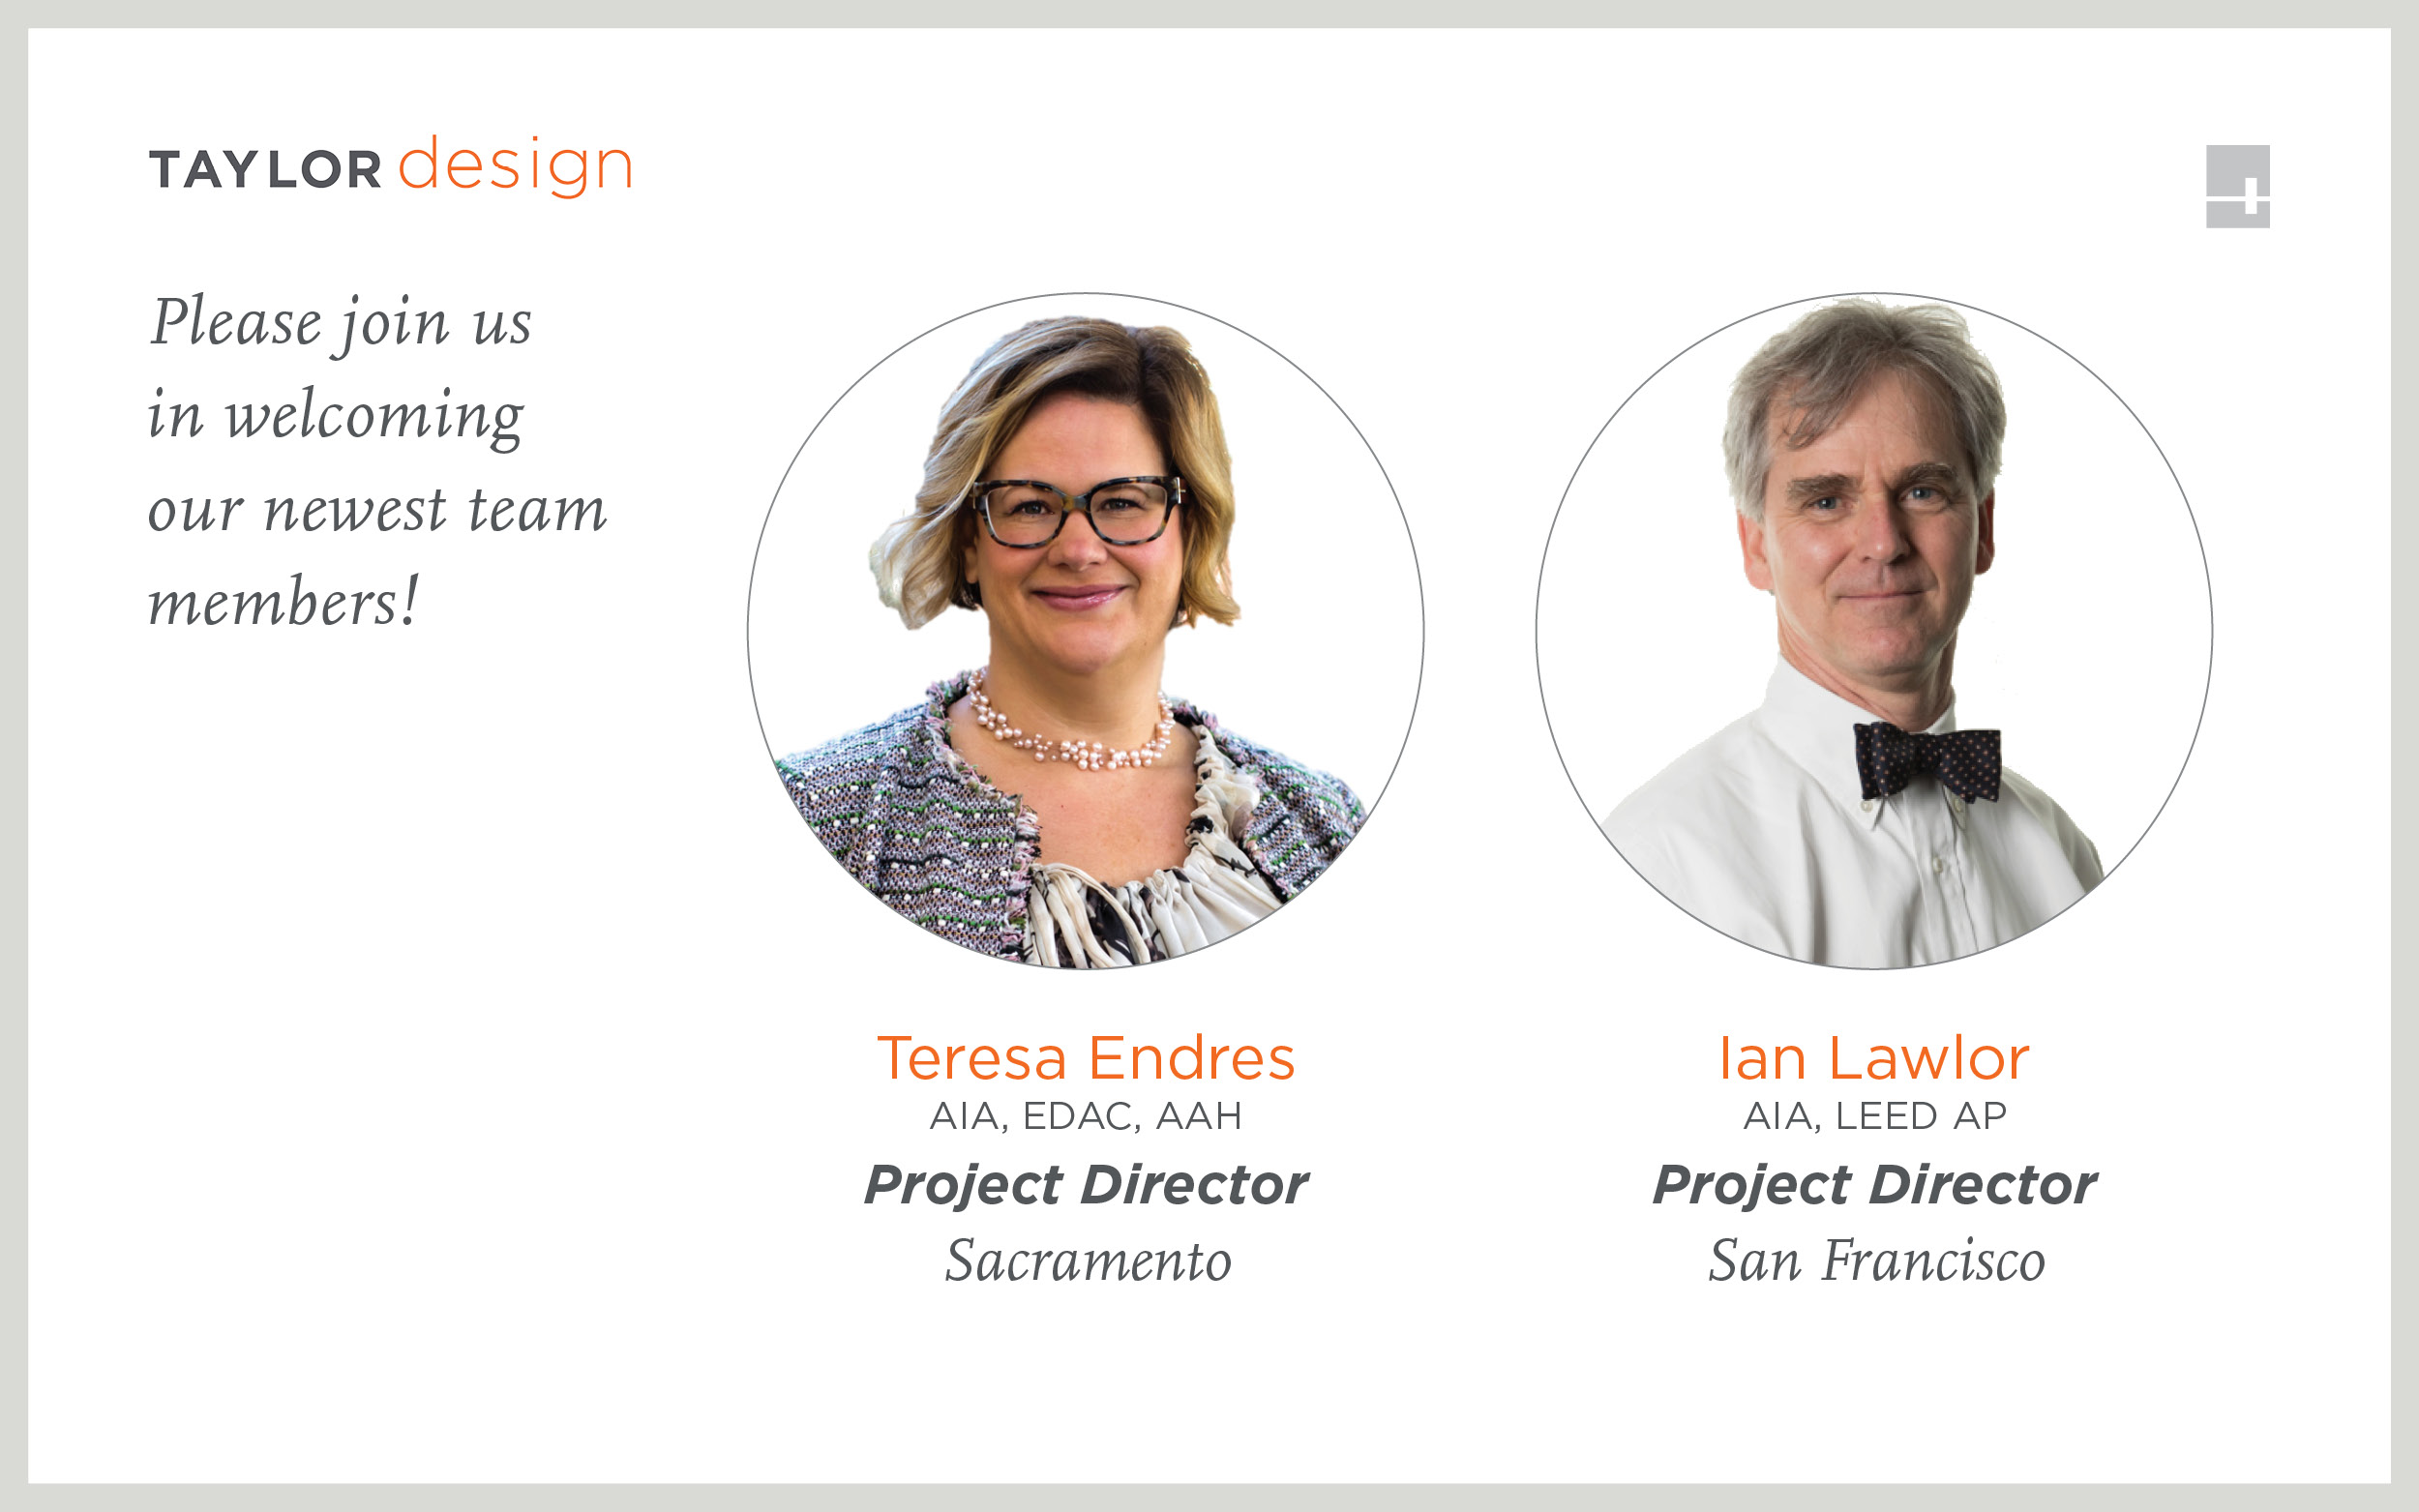 Teresa Endres and Ian Lawlor join Taylor Design